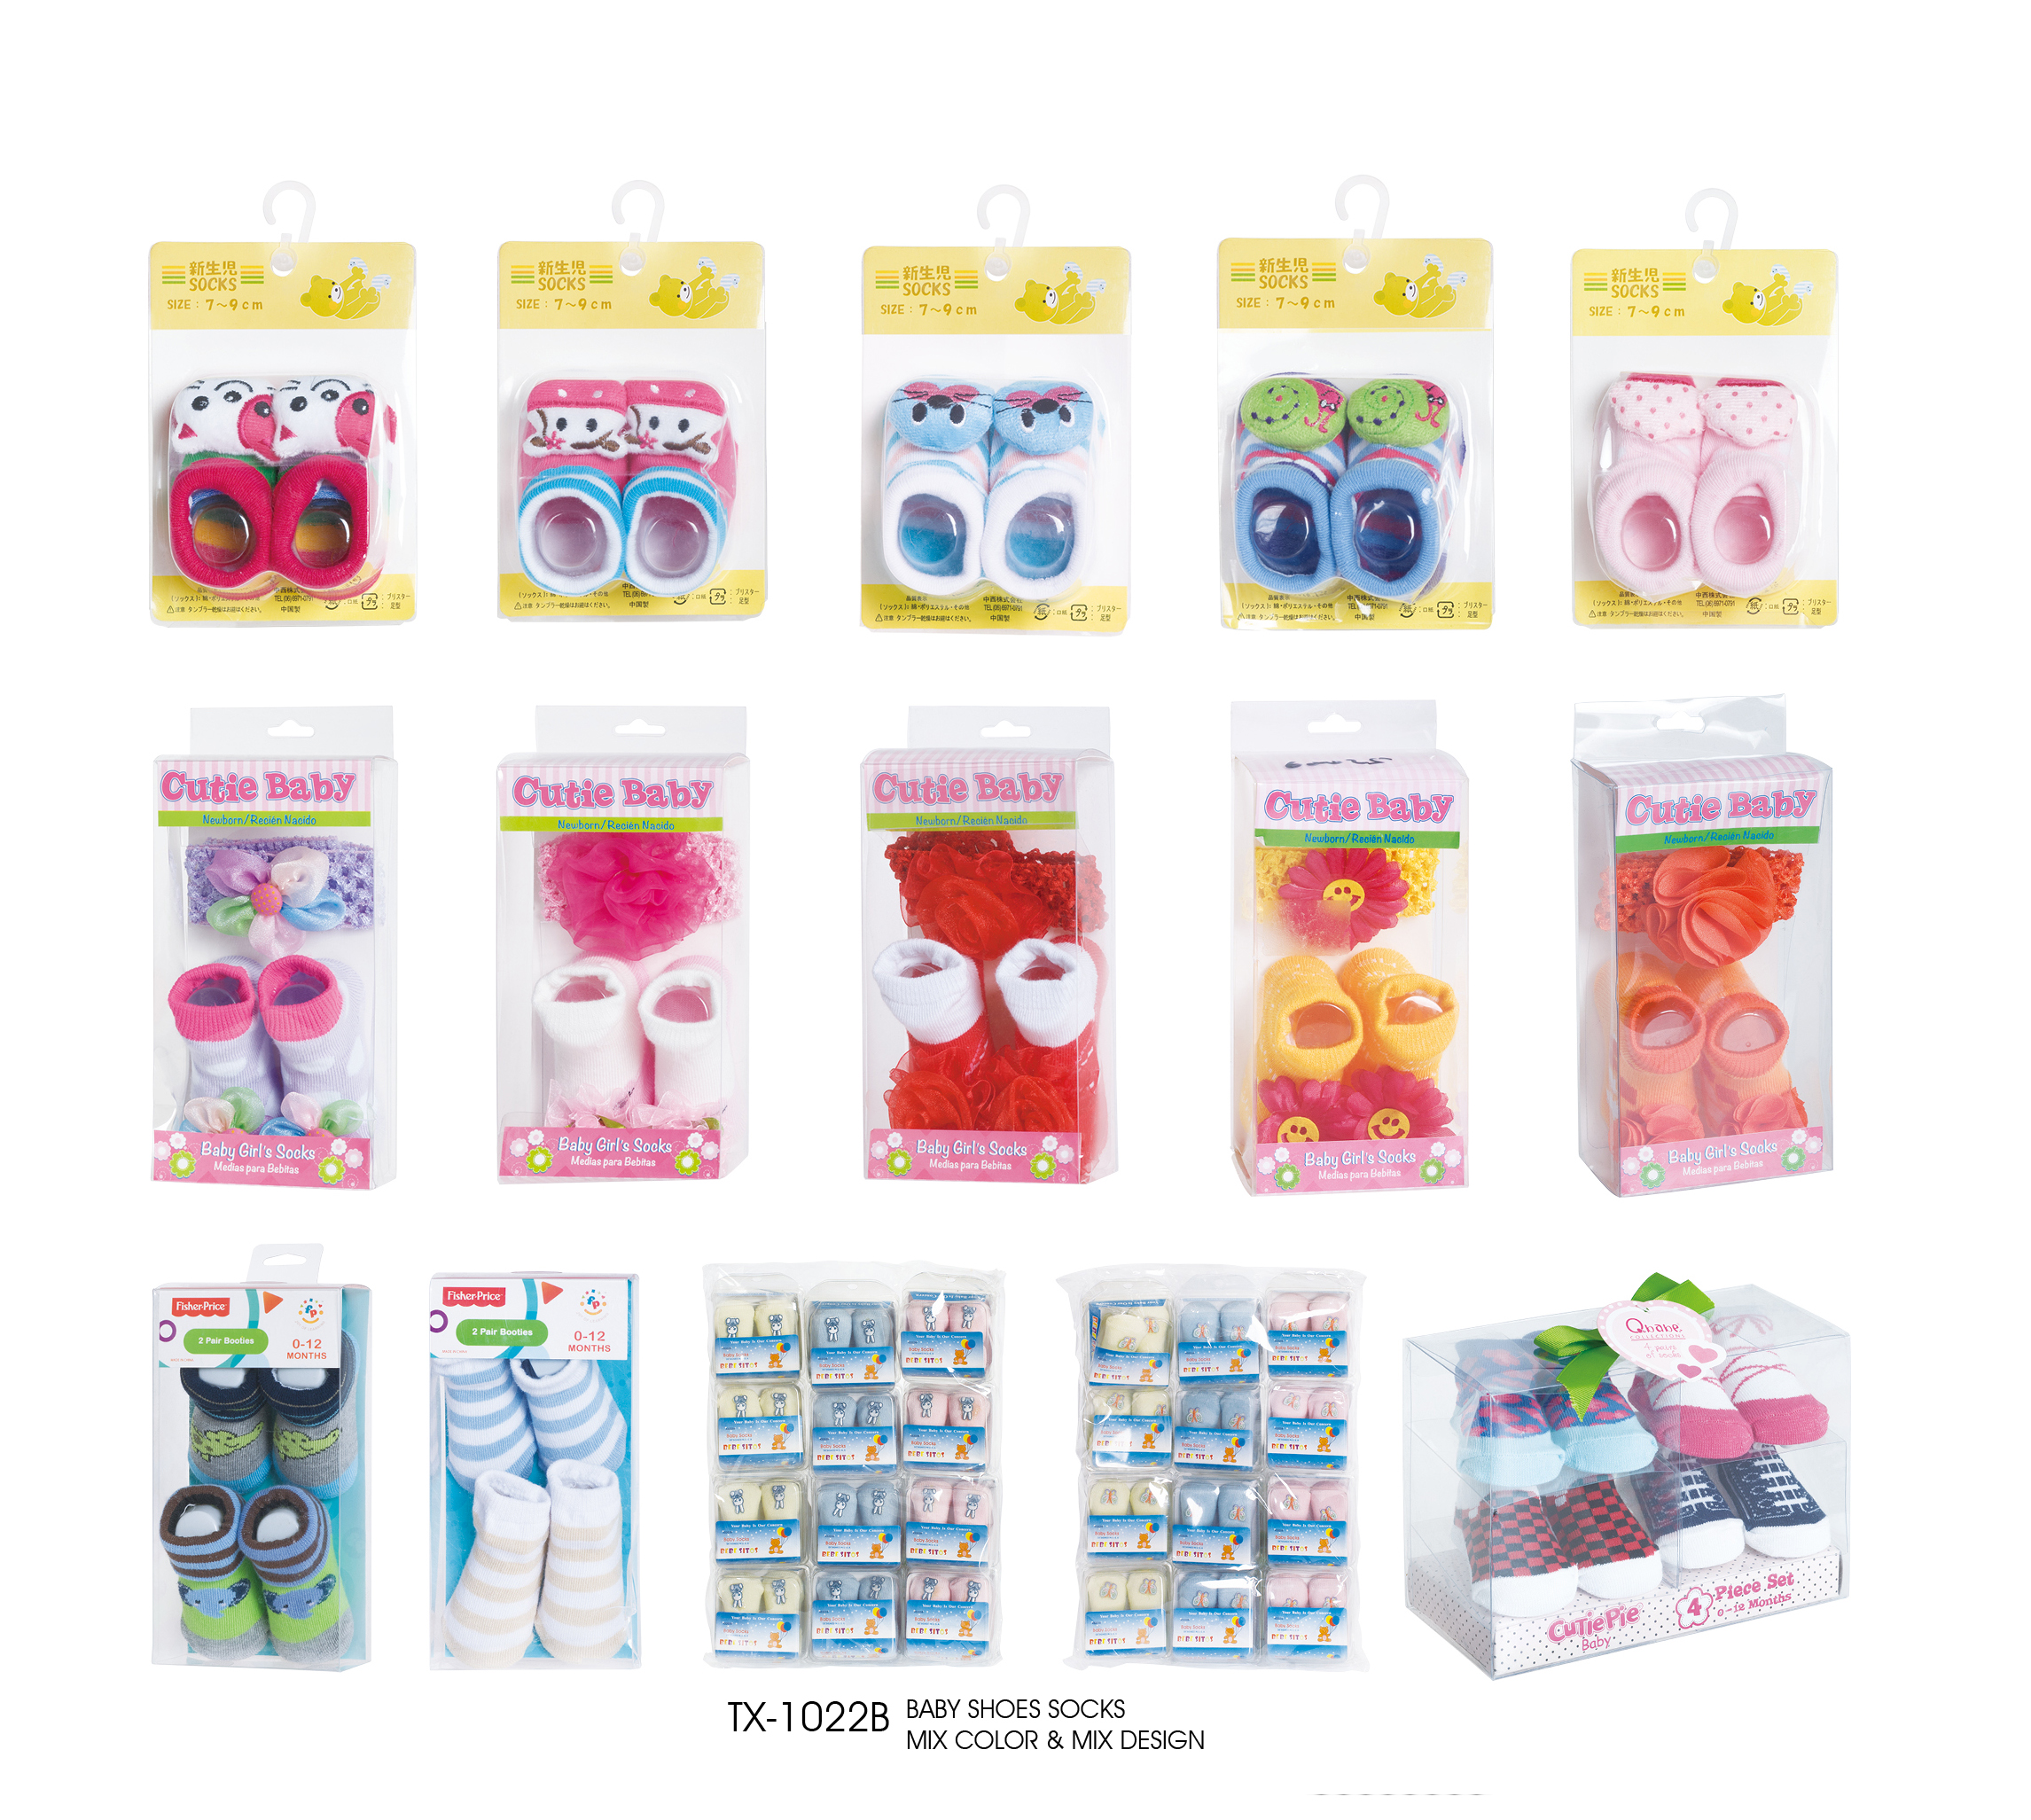 100% Cotton Baby Shoes and Socks